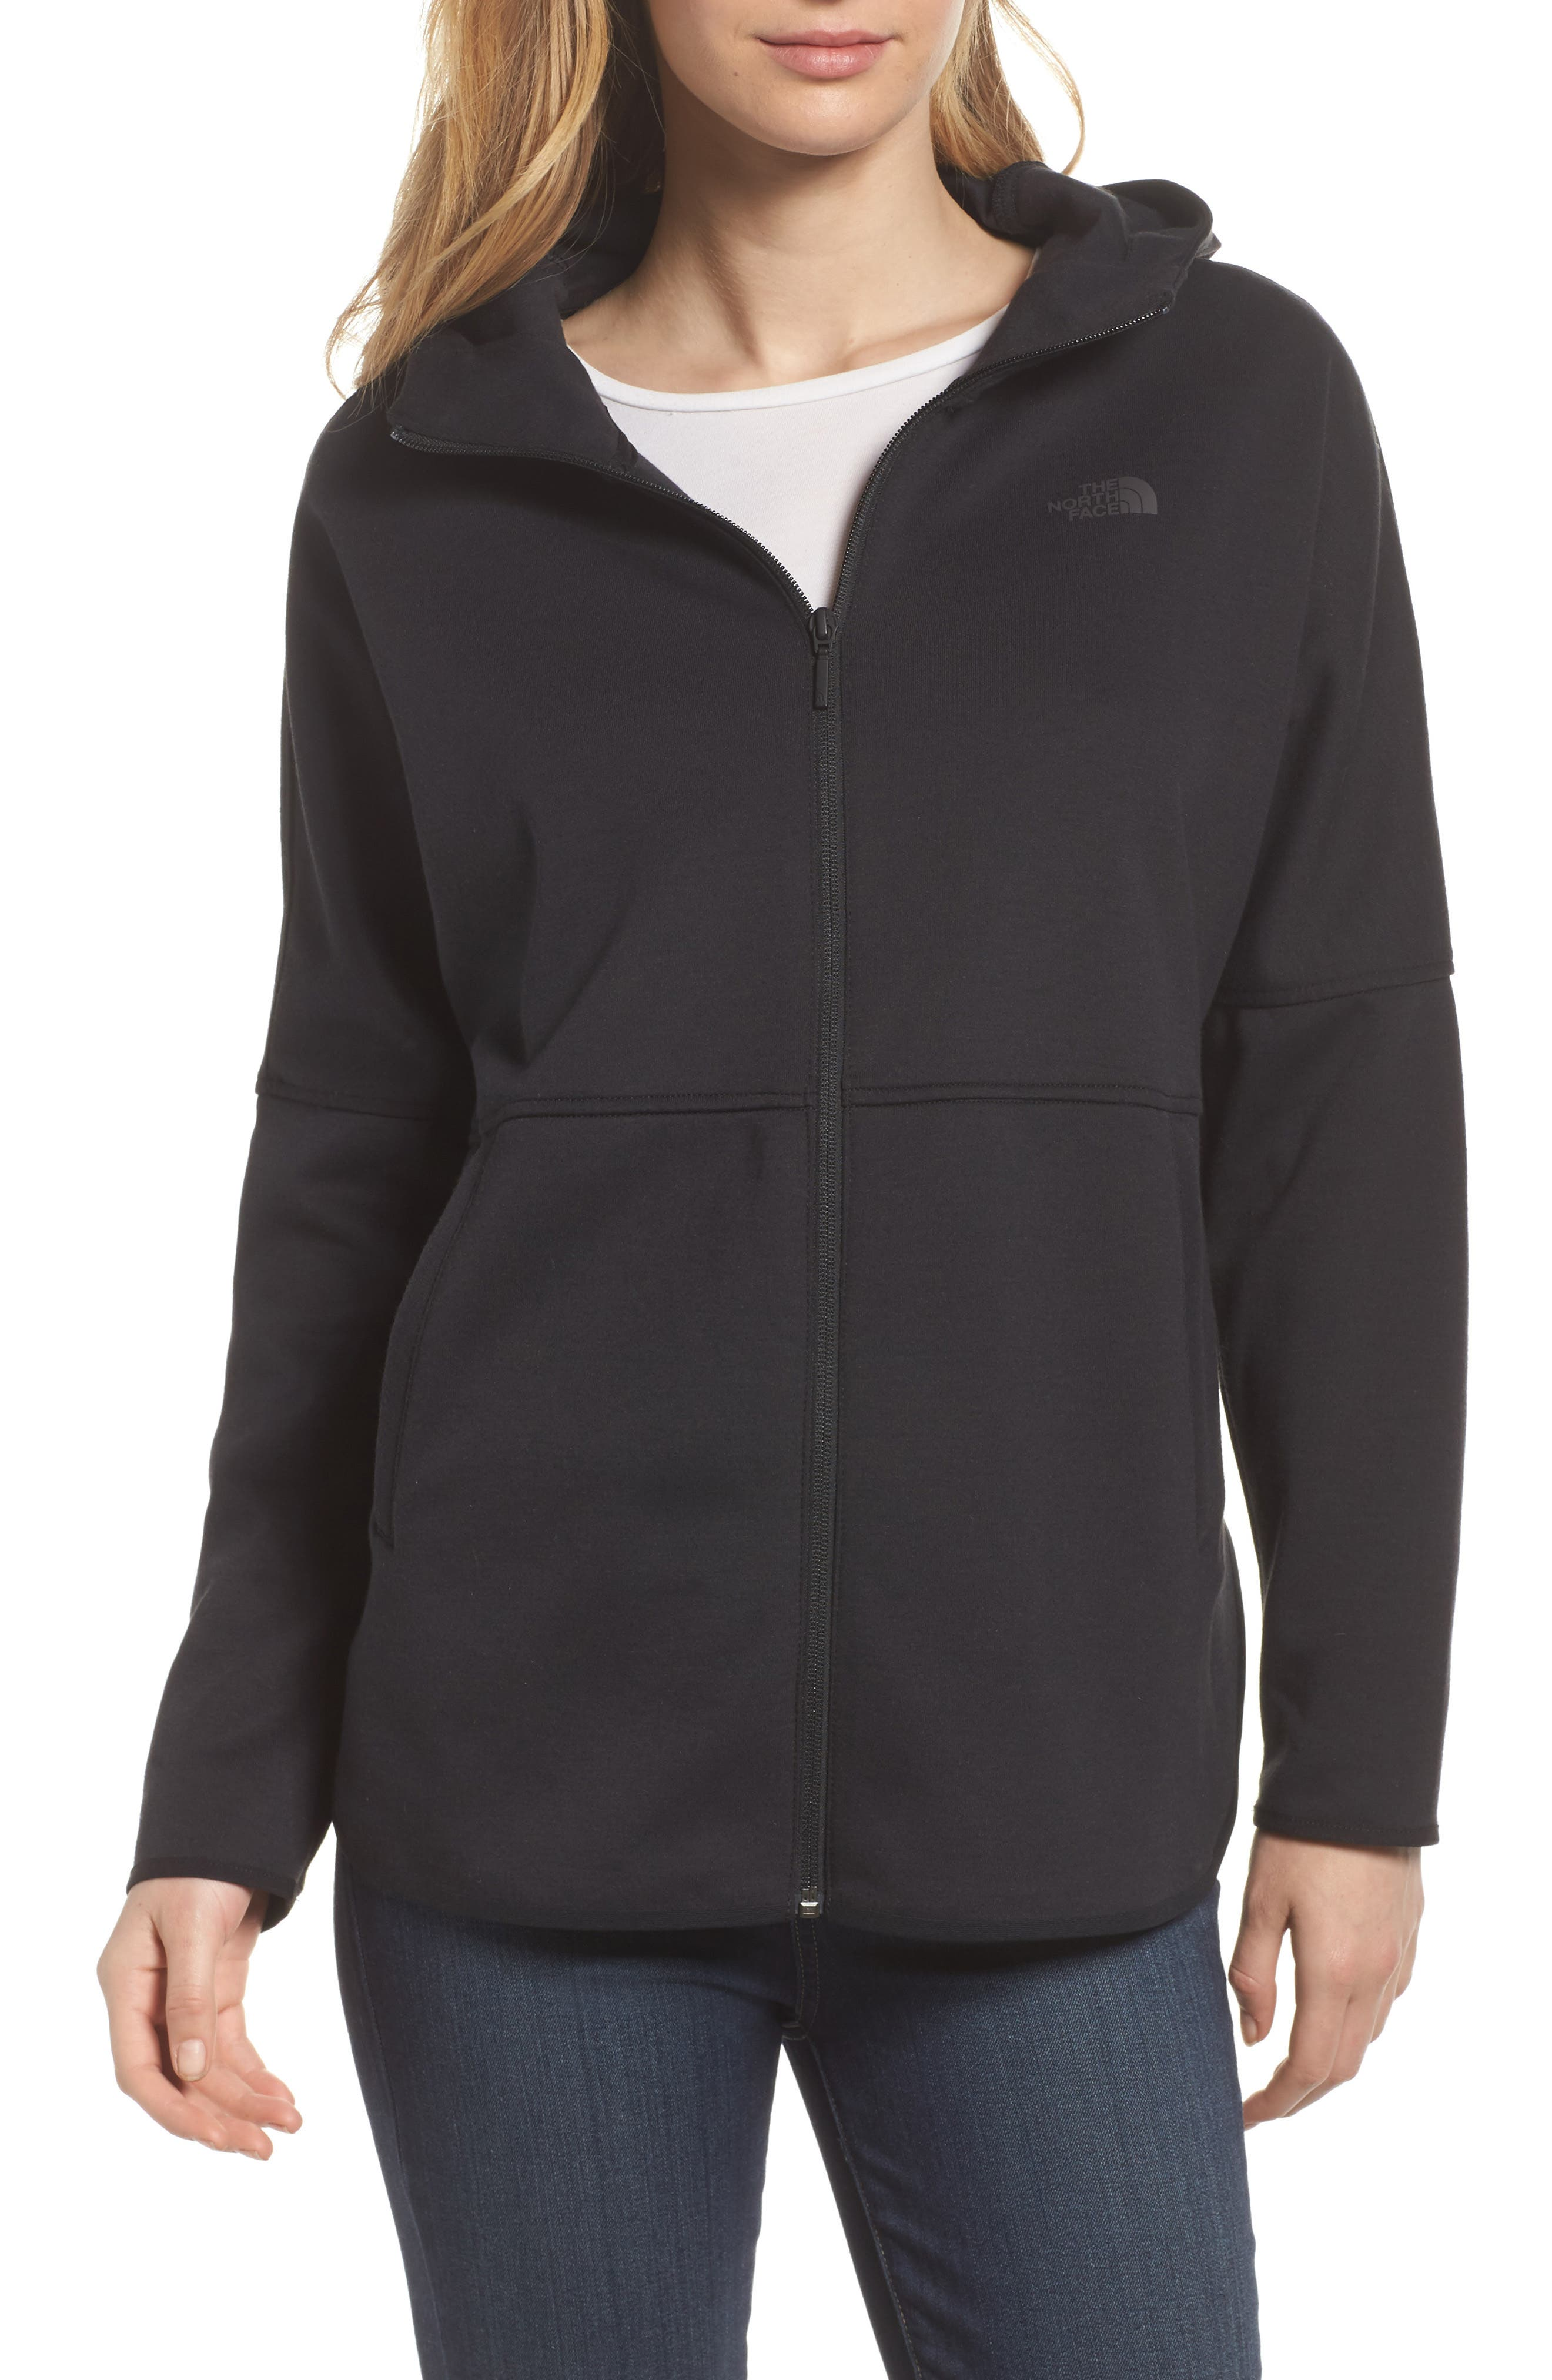 THE NORTH FACE,                             Slacker Hooded Jacket,                             Main thumbnail 1, color,                             001